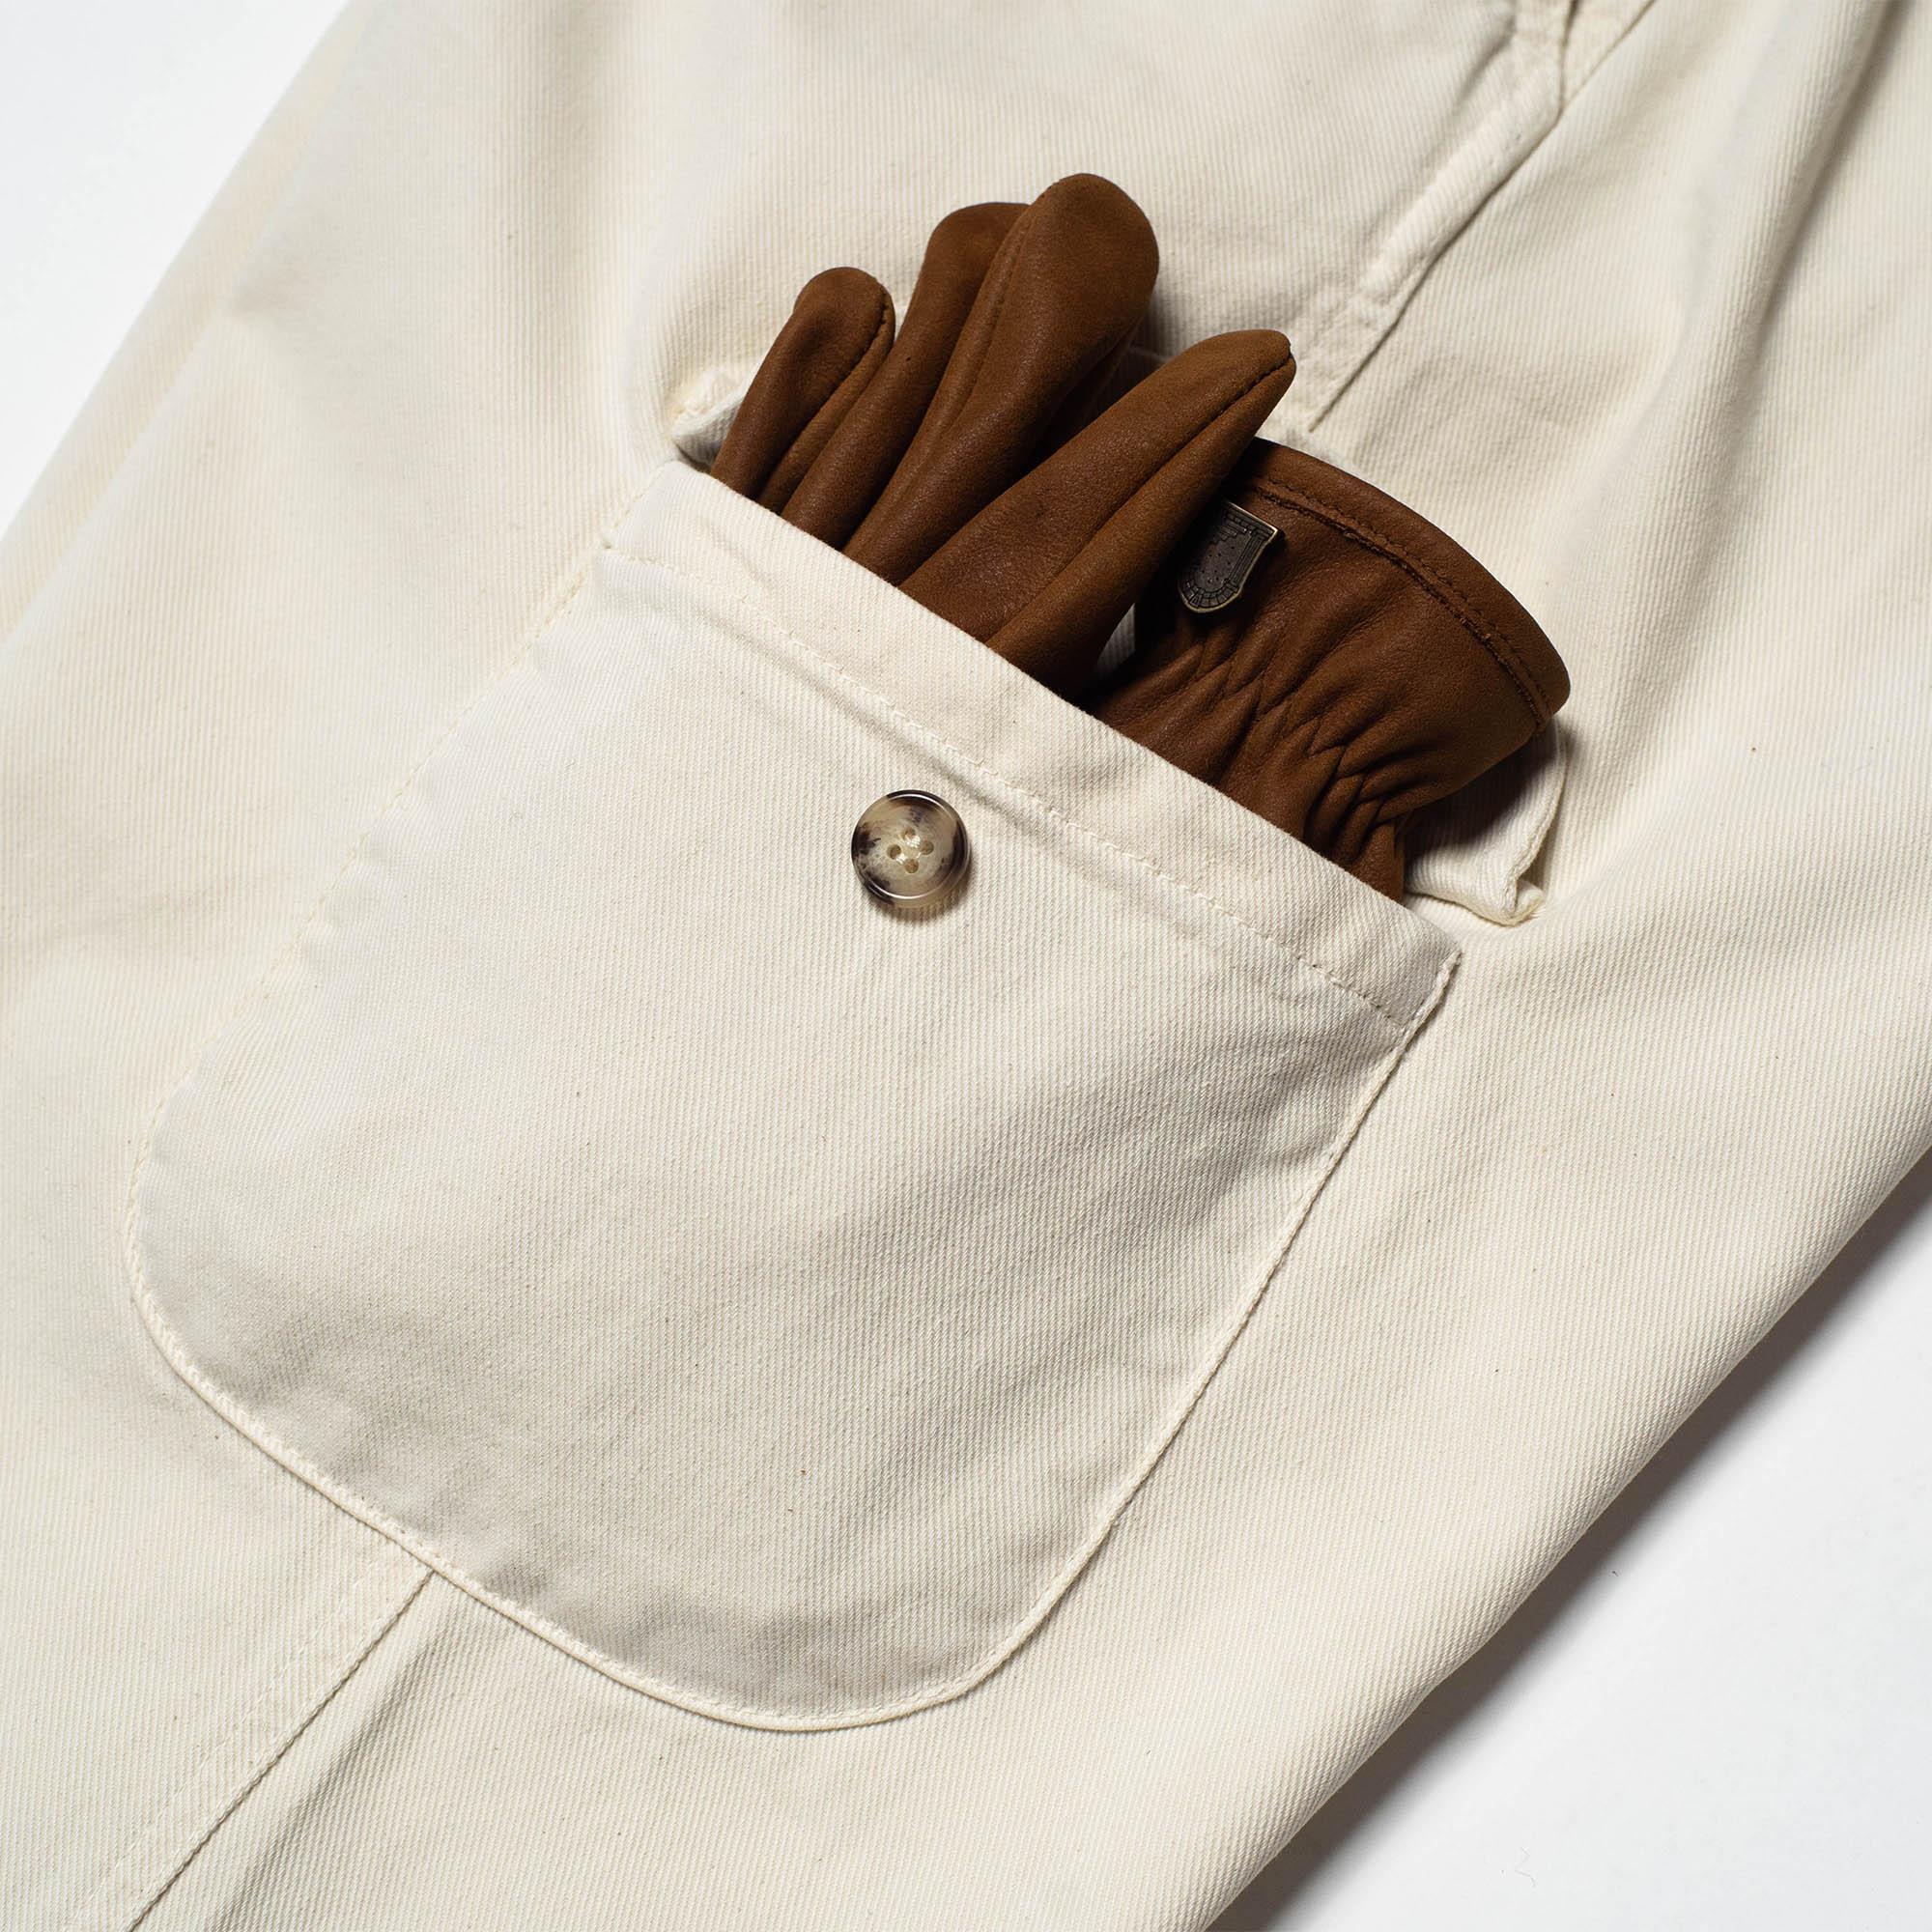 shangri-la-heritage-explorator-white-cotton-twill-pants-still-life-cargo-pocket-gloves